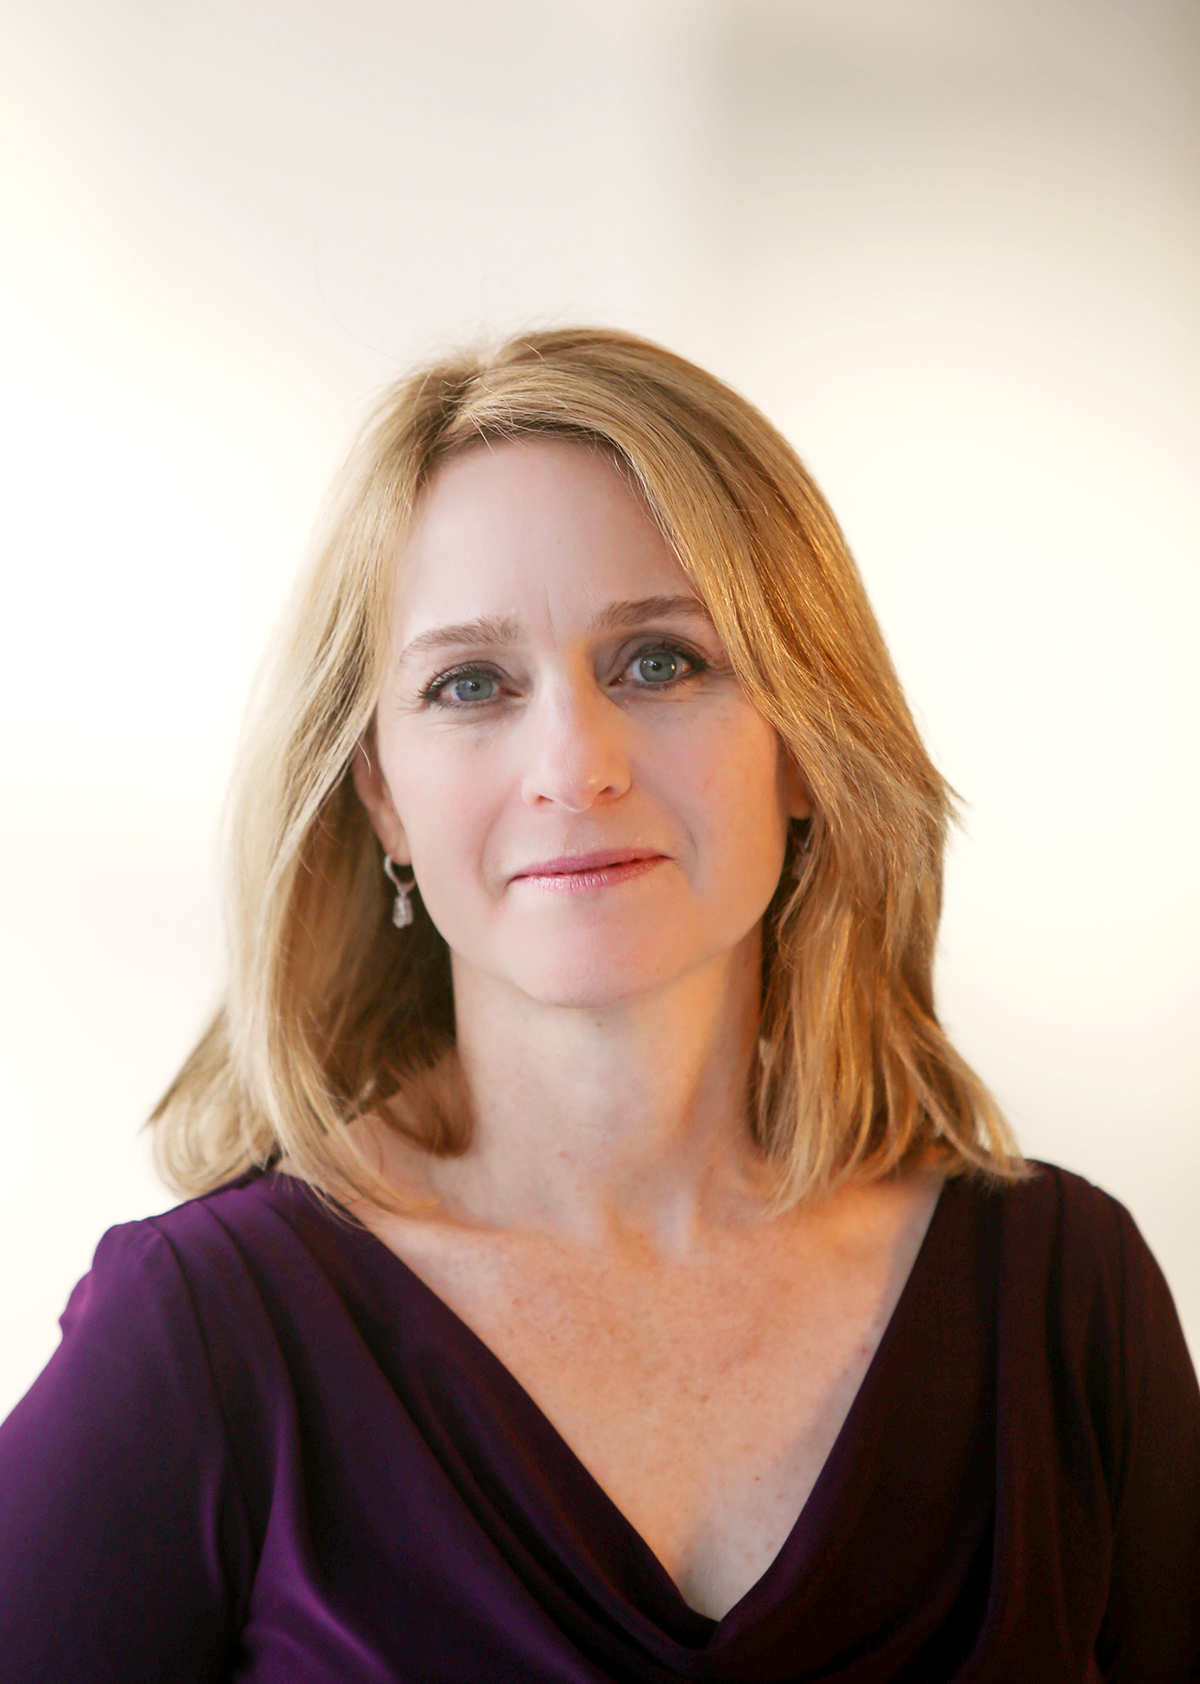 Foreign Policy Expert Kathleen Hicks To Begin Week Of Partnership With Center For Strategic And